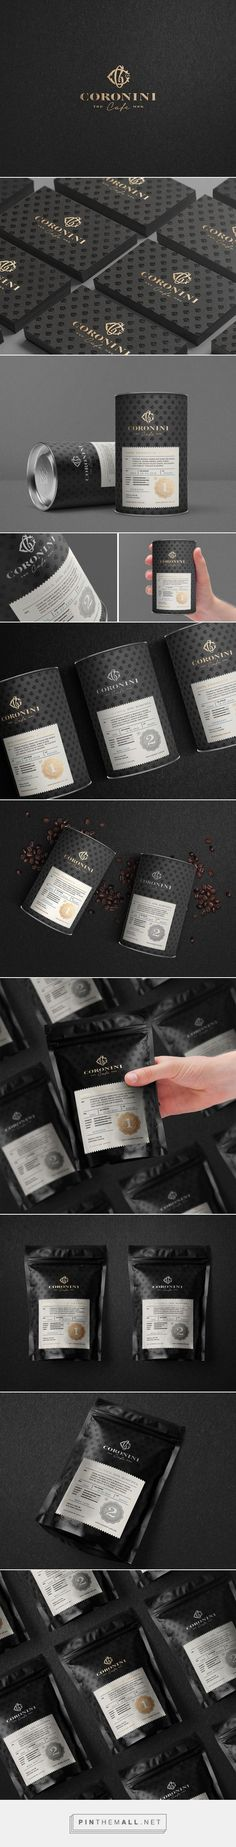 Coronini Cafe Micro Roasting Company Packaging by Milos Milovanovic | Fivestar Branding Agency – Design and Branding Agency & Curated Inspiration Gallery